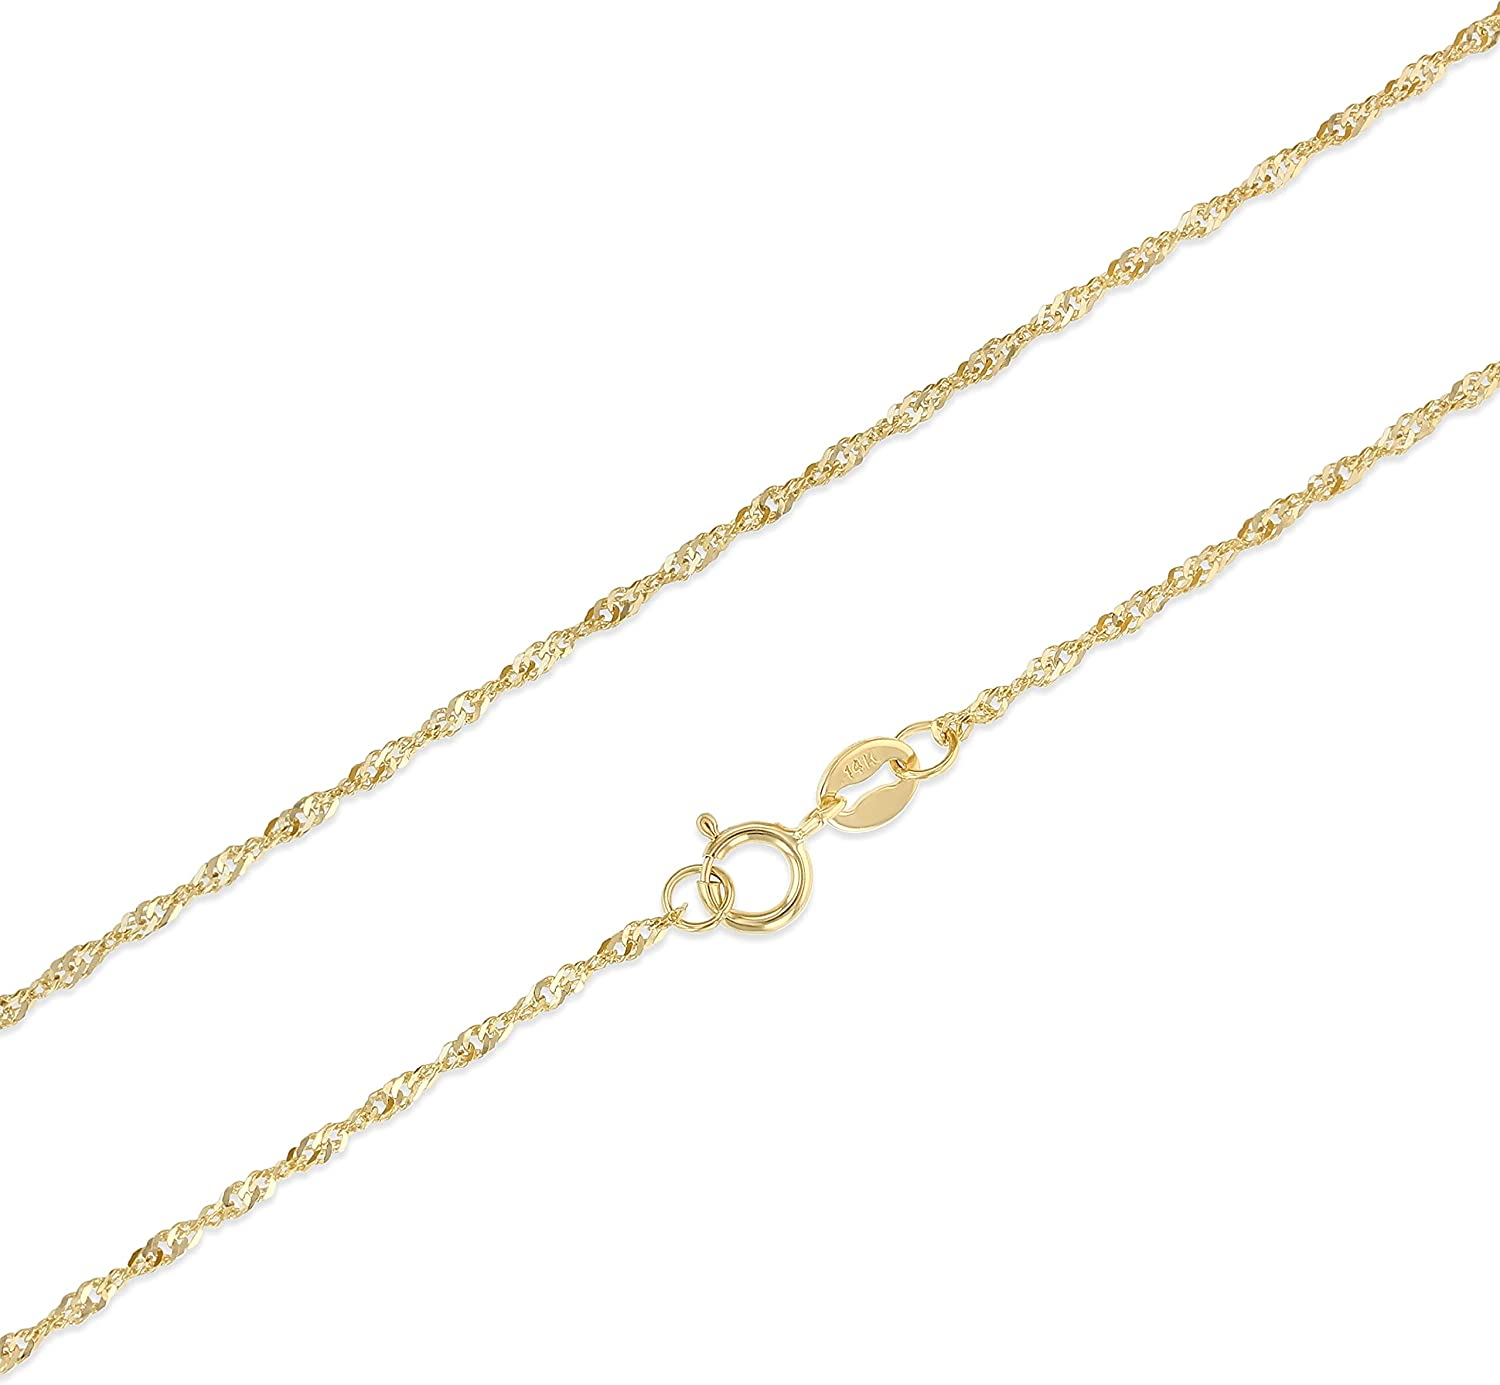 Ioka - 14K Yellow, White OR TriColor Solid Gold 1.2mm Singapore Chain Necklace with Spring Ring Clasp